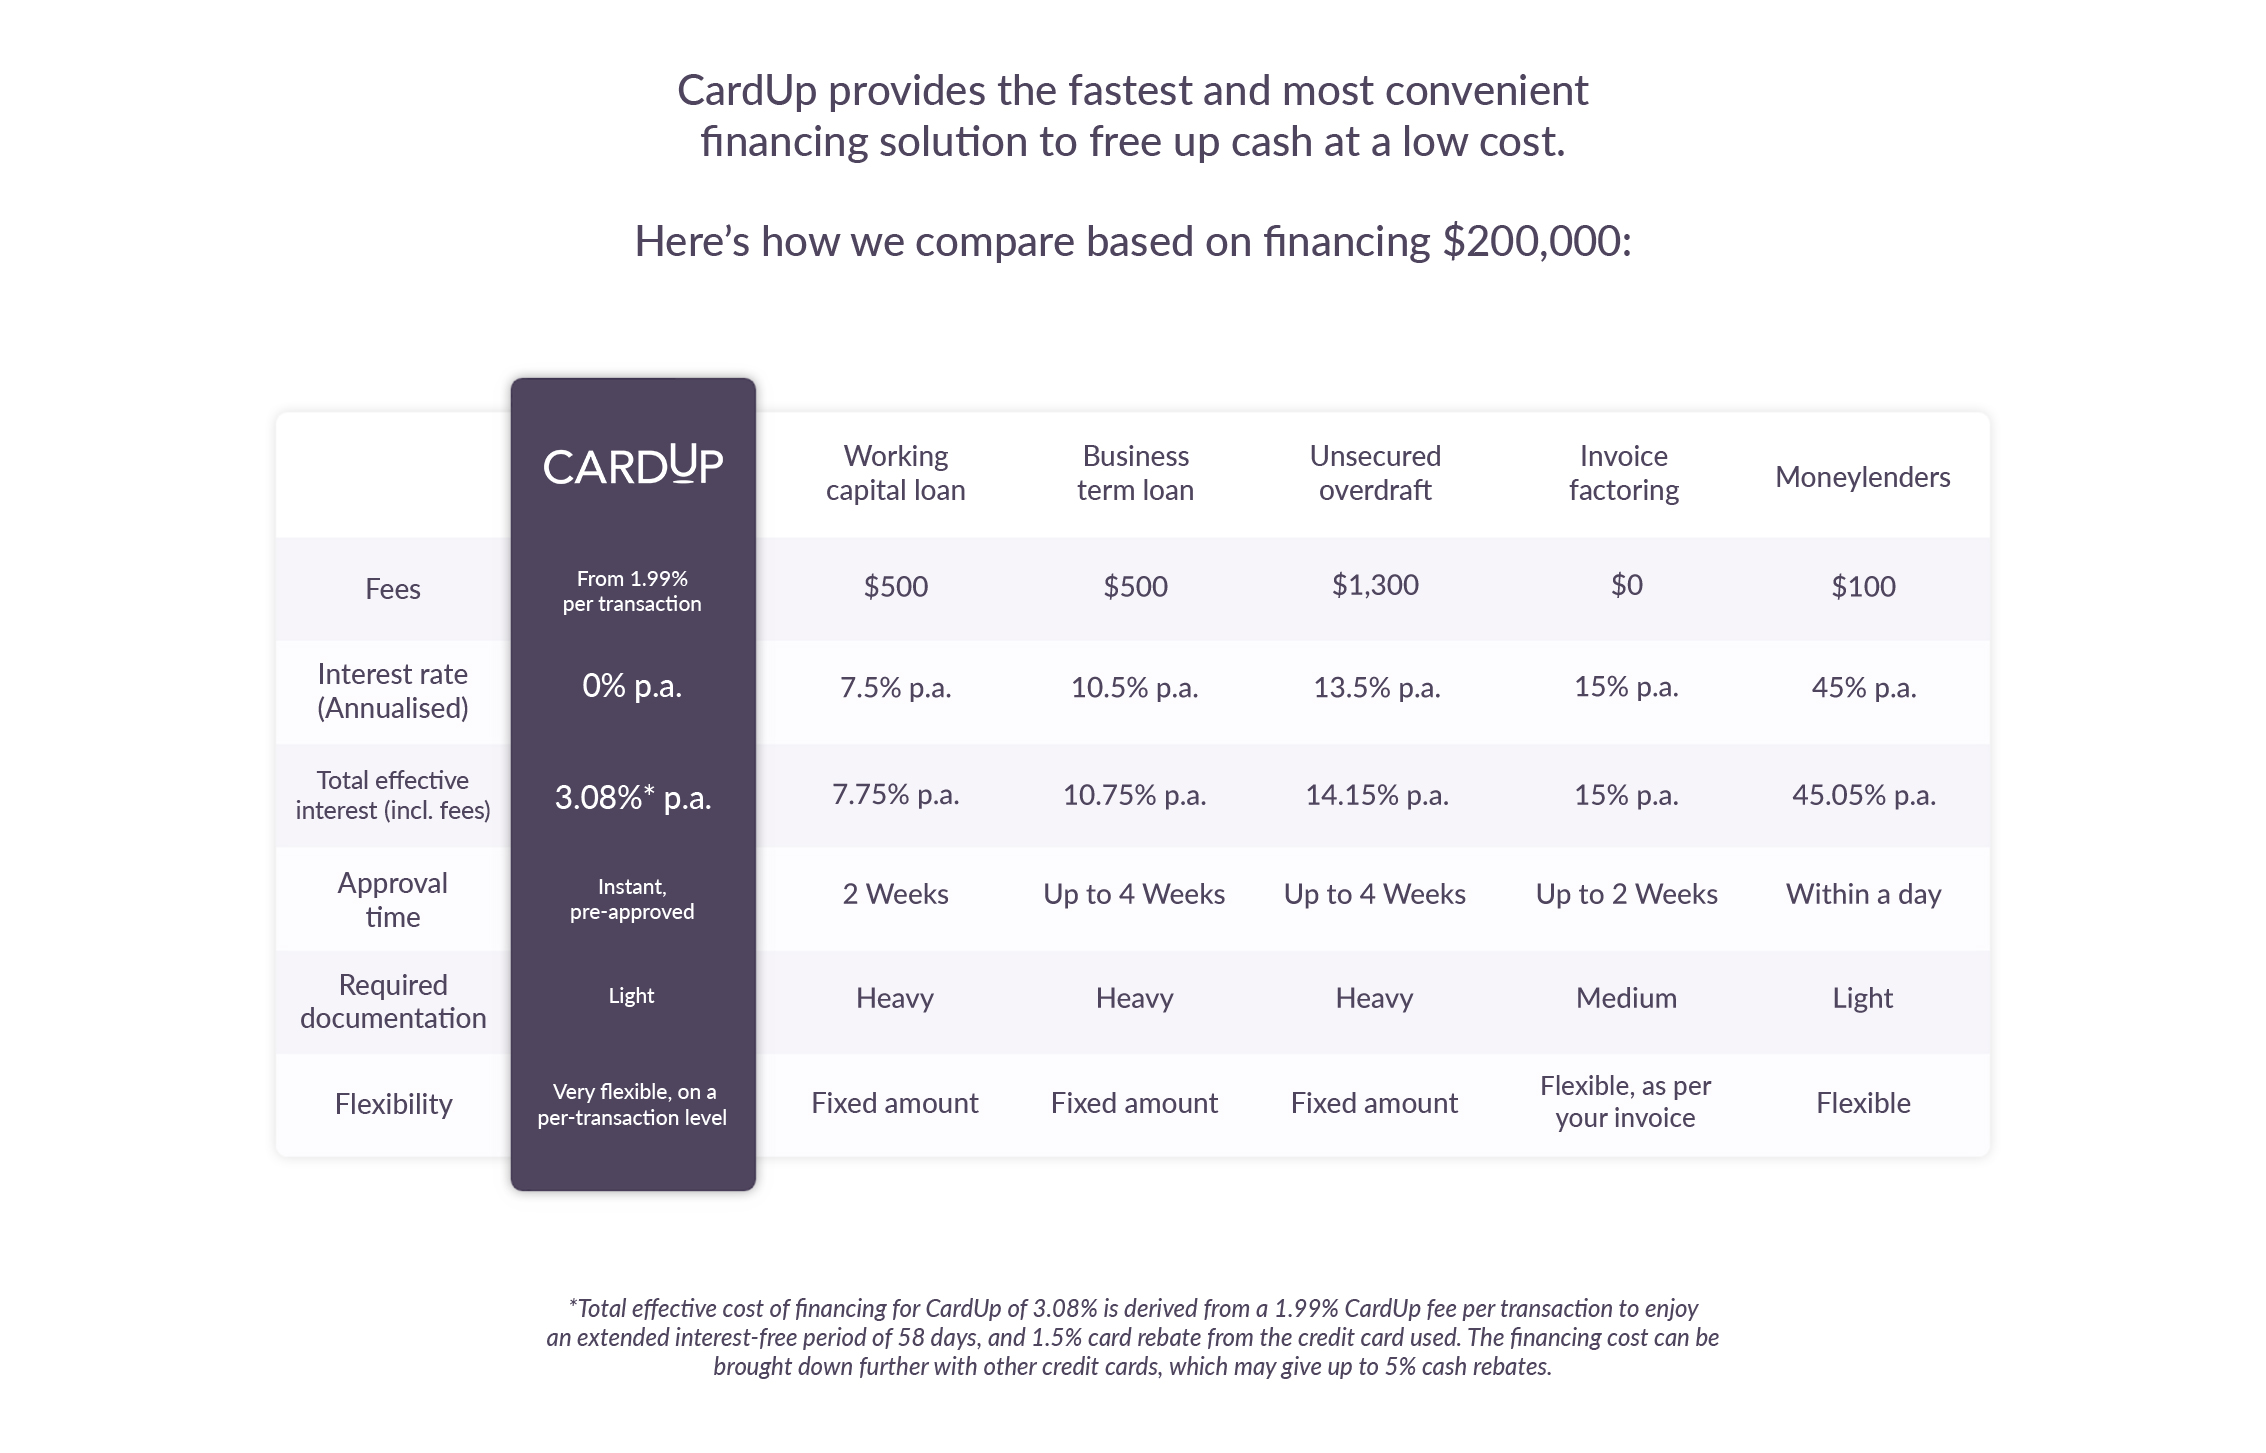 Comparison table of various working capital loan types